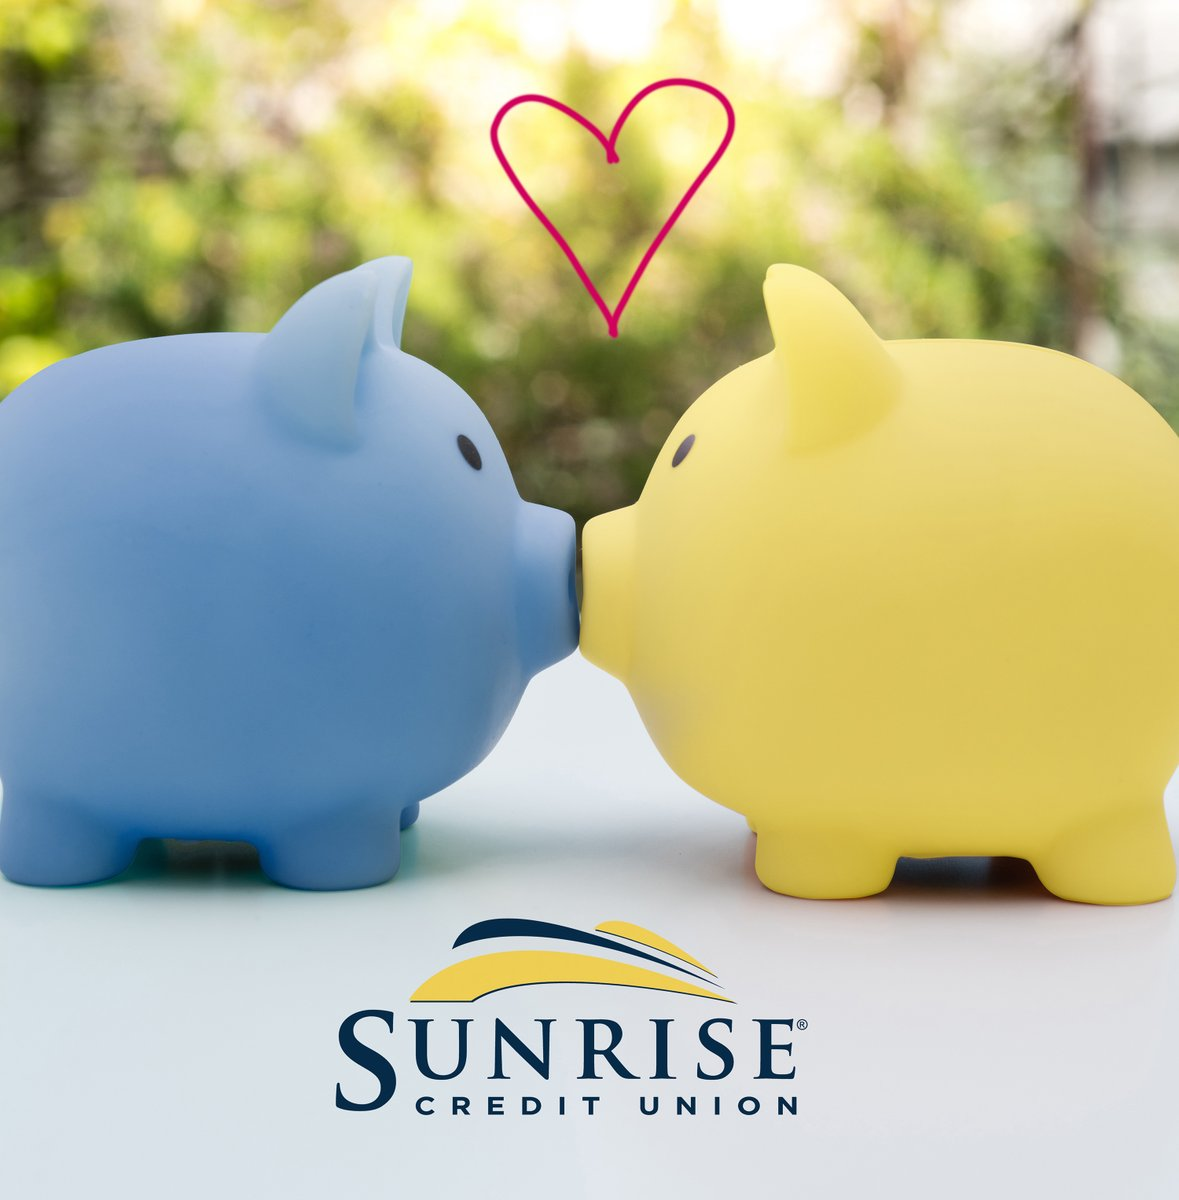 HAPPY VALENTINE'S DAY! From all of us at Sunrise Credit Union!   #valentinesday #february14 #brandonmb #bdnmb pic.twitter.com/P2xnMKqh8A